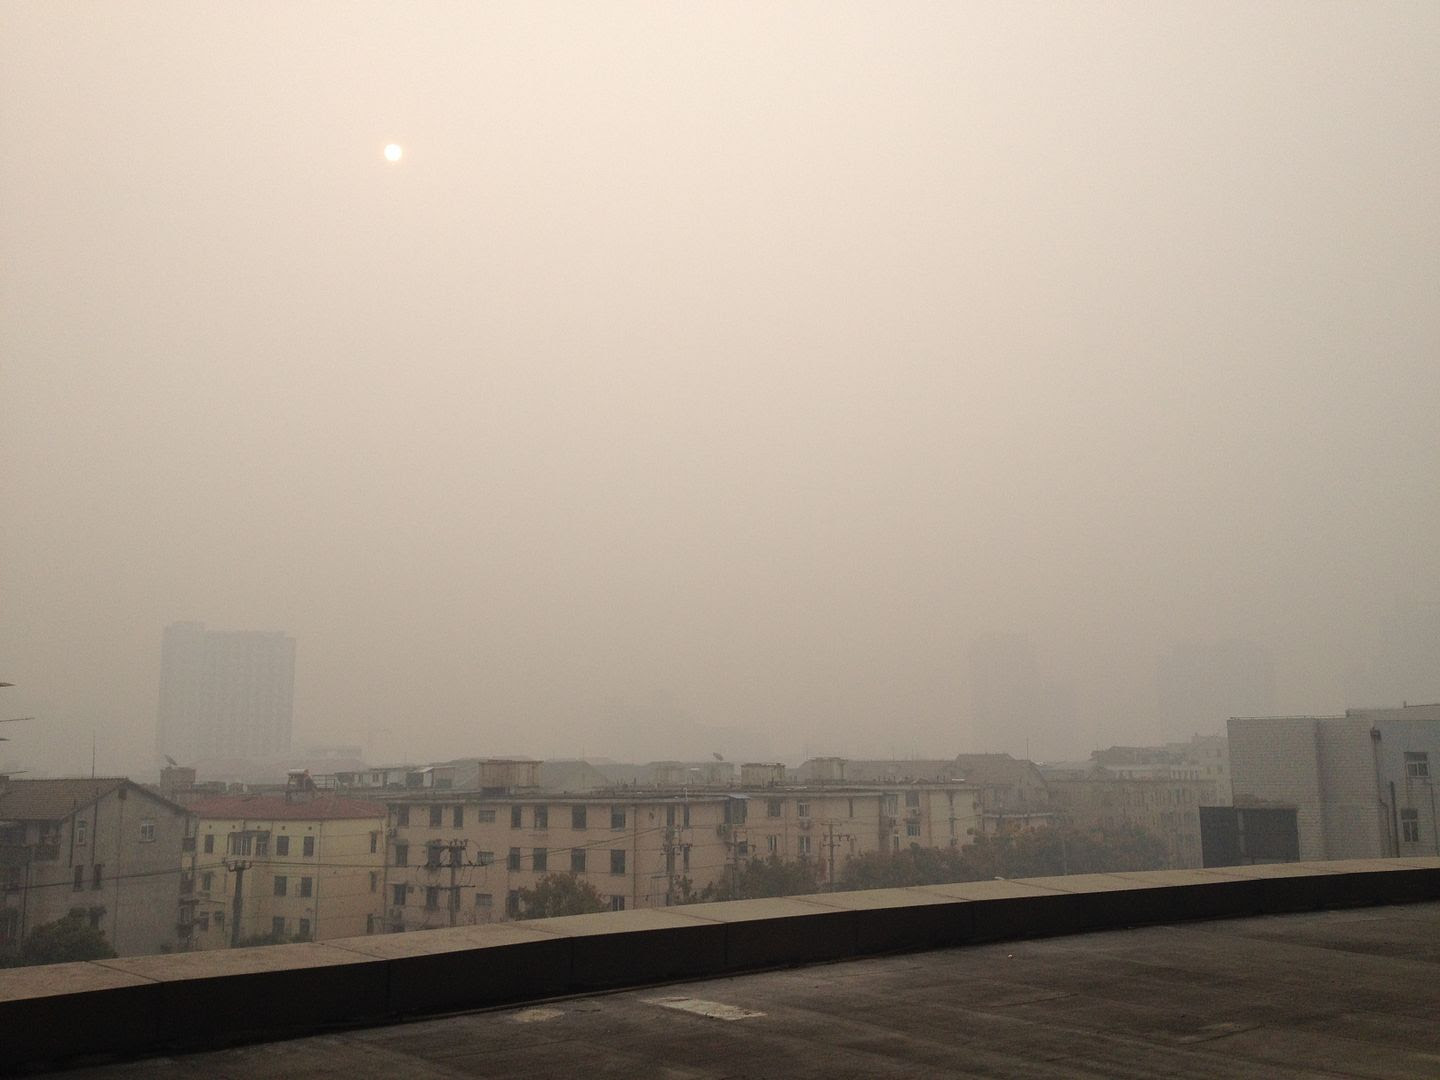 Worst Day of Pollution in Shanghai--December 6th, 2013 photo 2013-12-06091355_zps6172e5d8.jpg